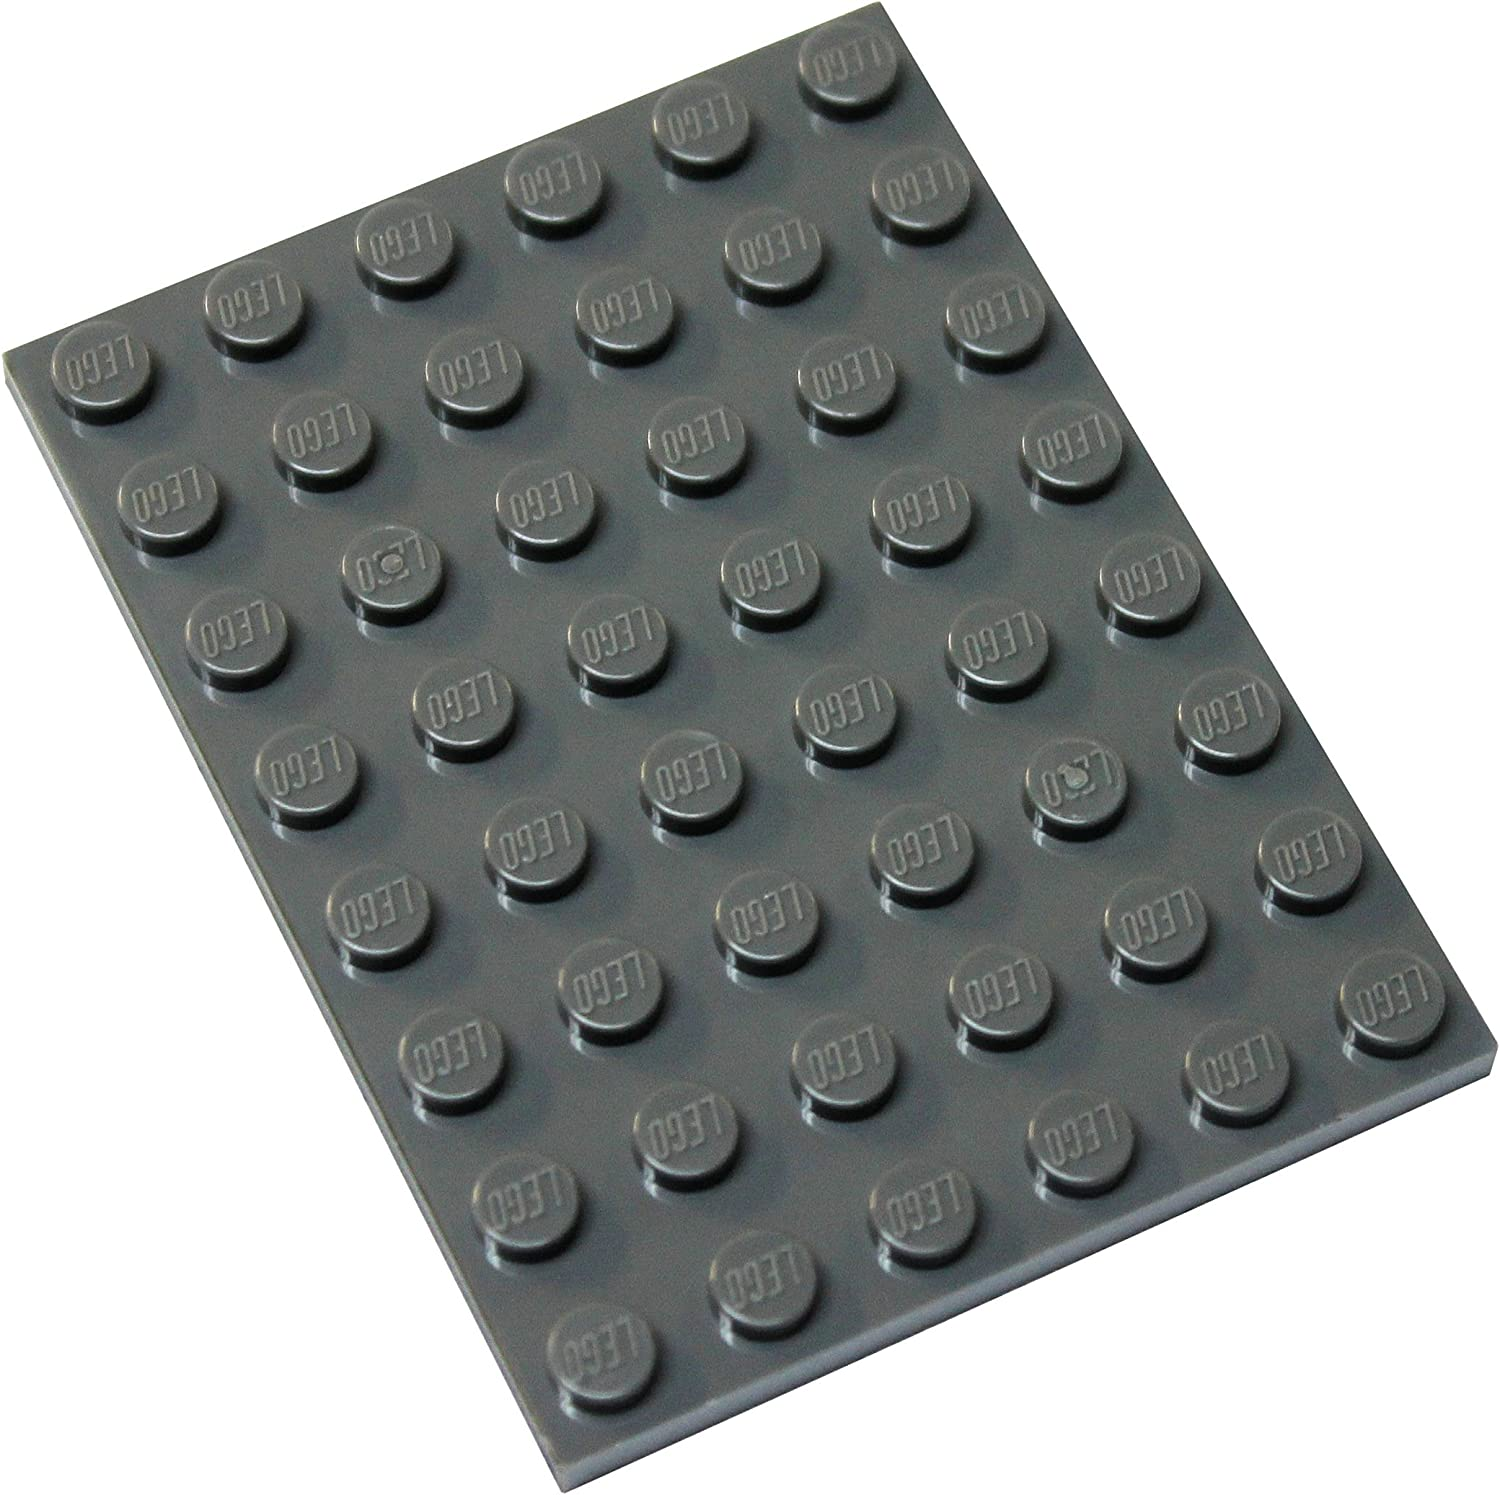 LEGO Parts and Pieces: Dark Gray (Dark Stone Grey) 6x8 Plate x20